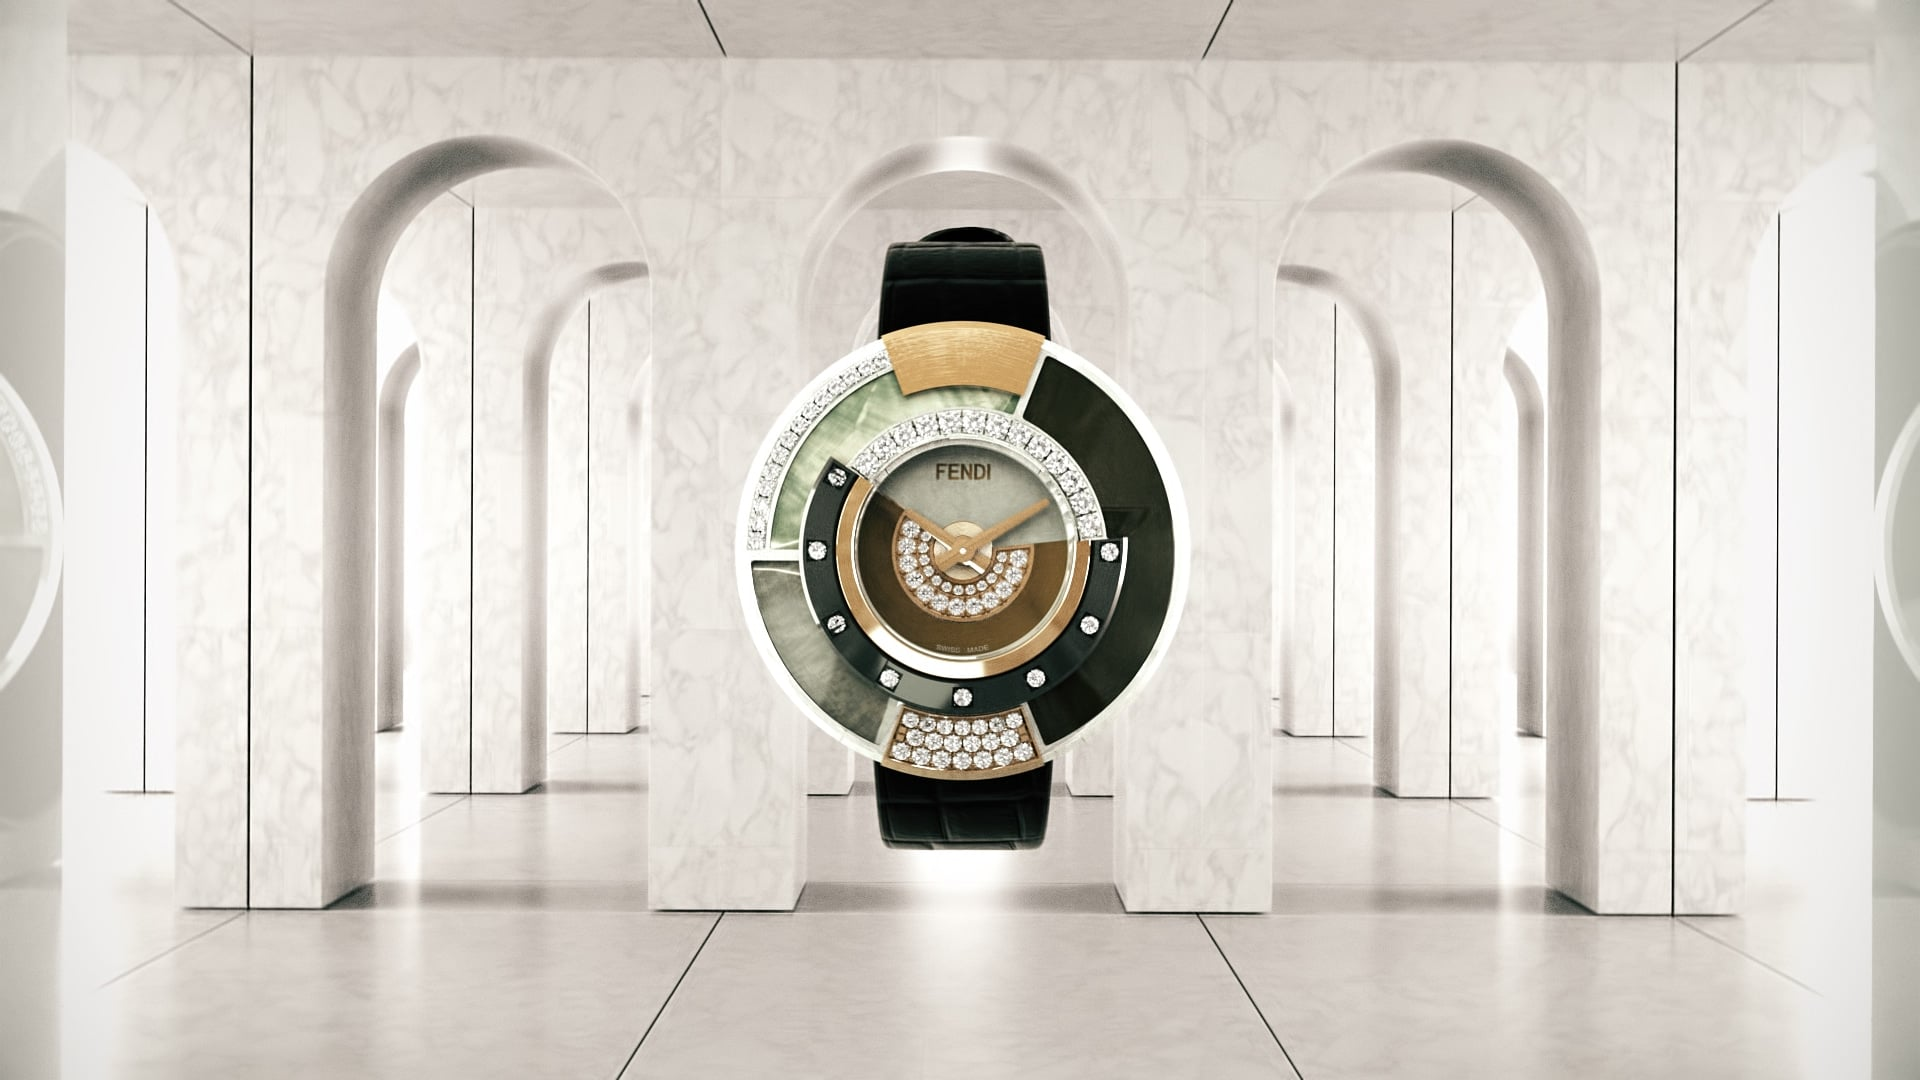 Fendi Policromia High Jewellery Watches Collection